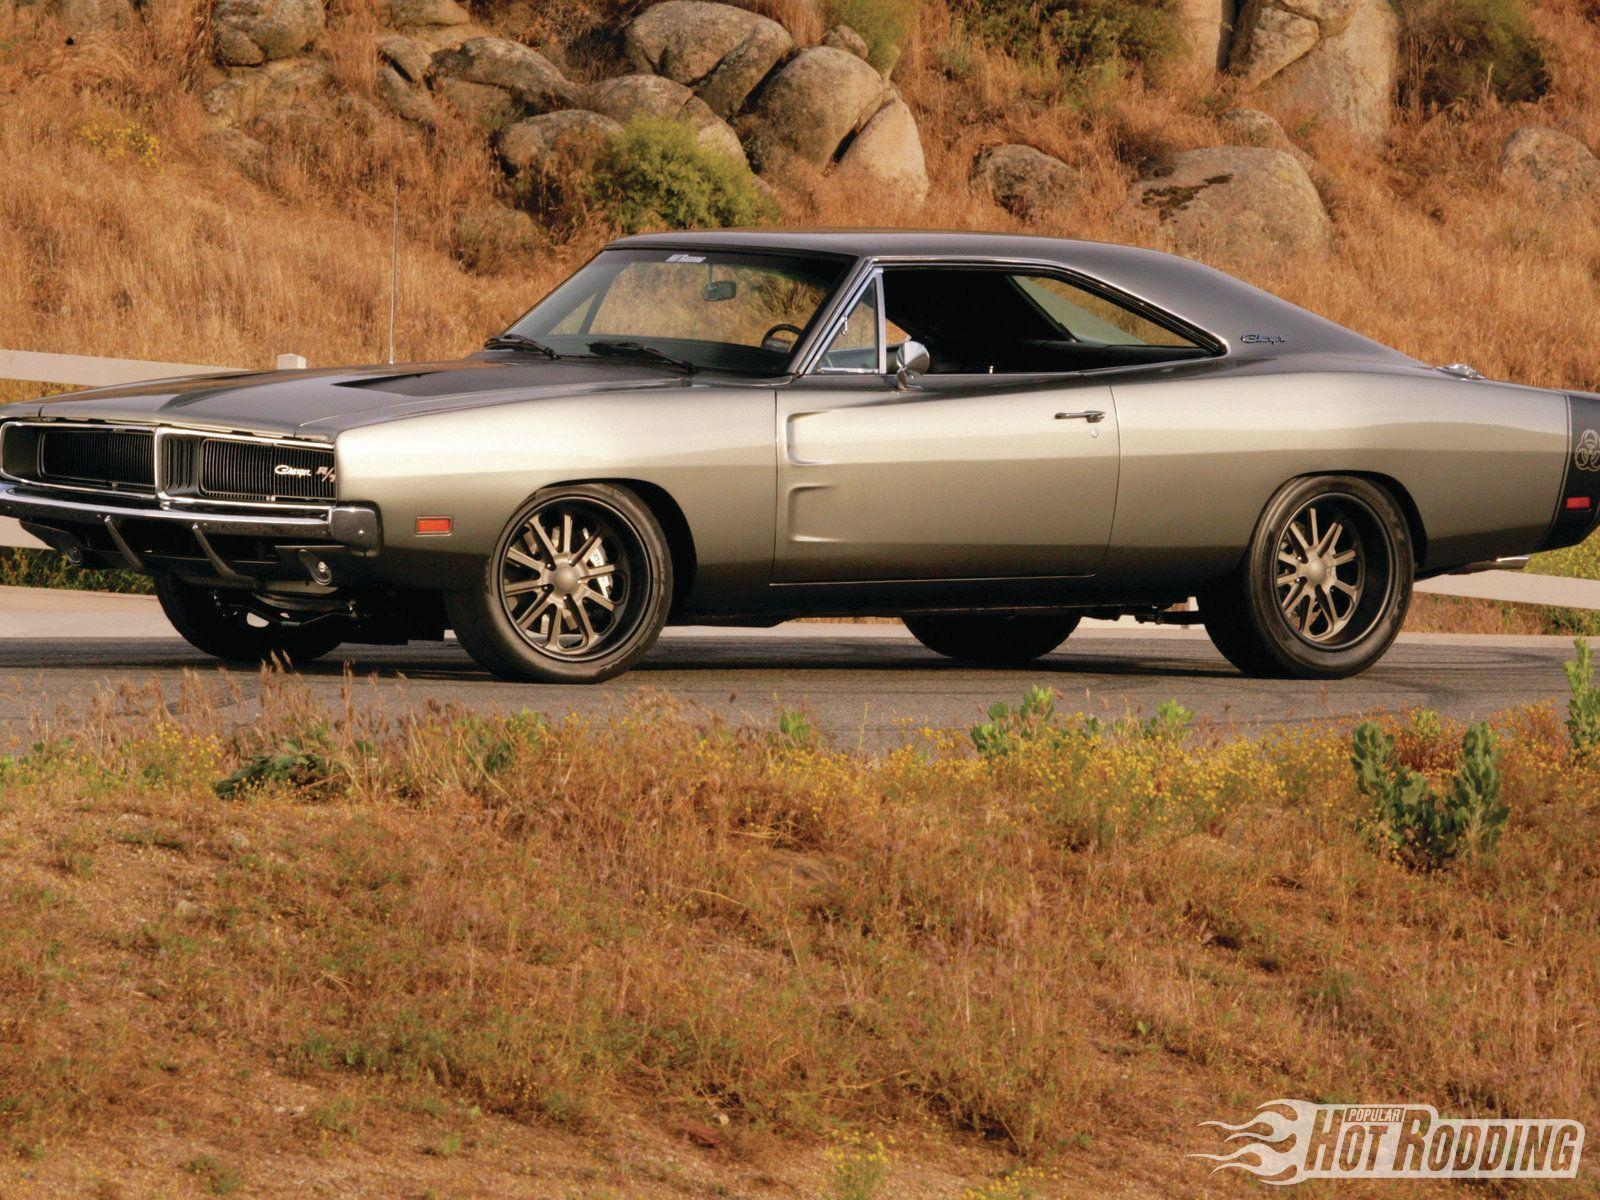 1969 Dodge Charger Computer Wallpapers, Desktop Backgrounds ...